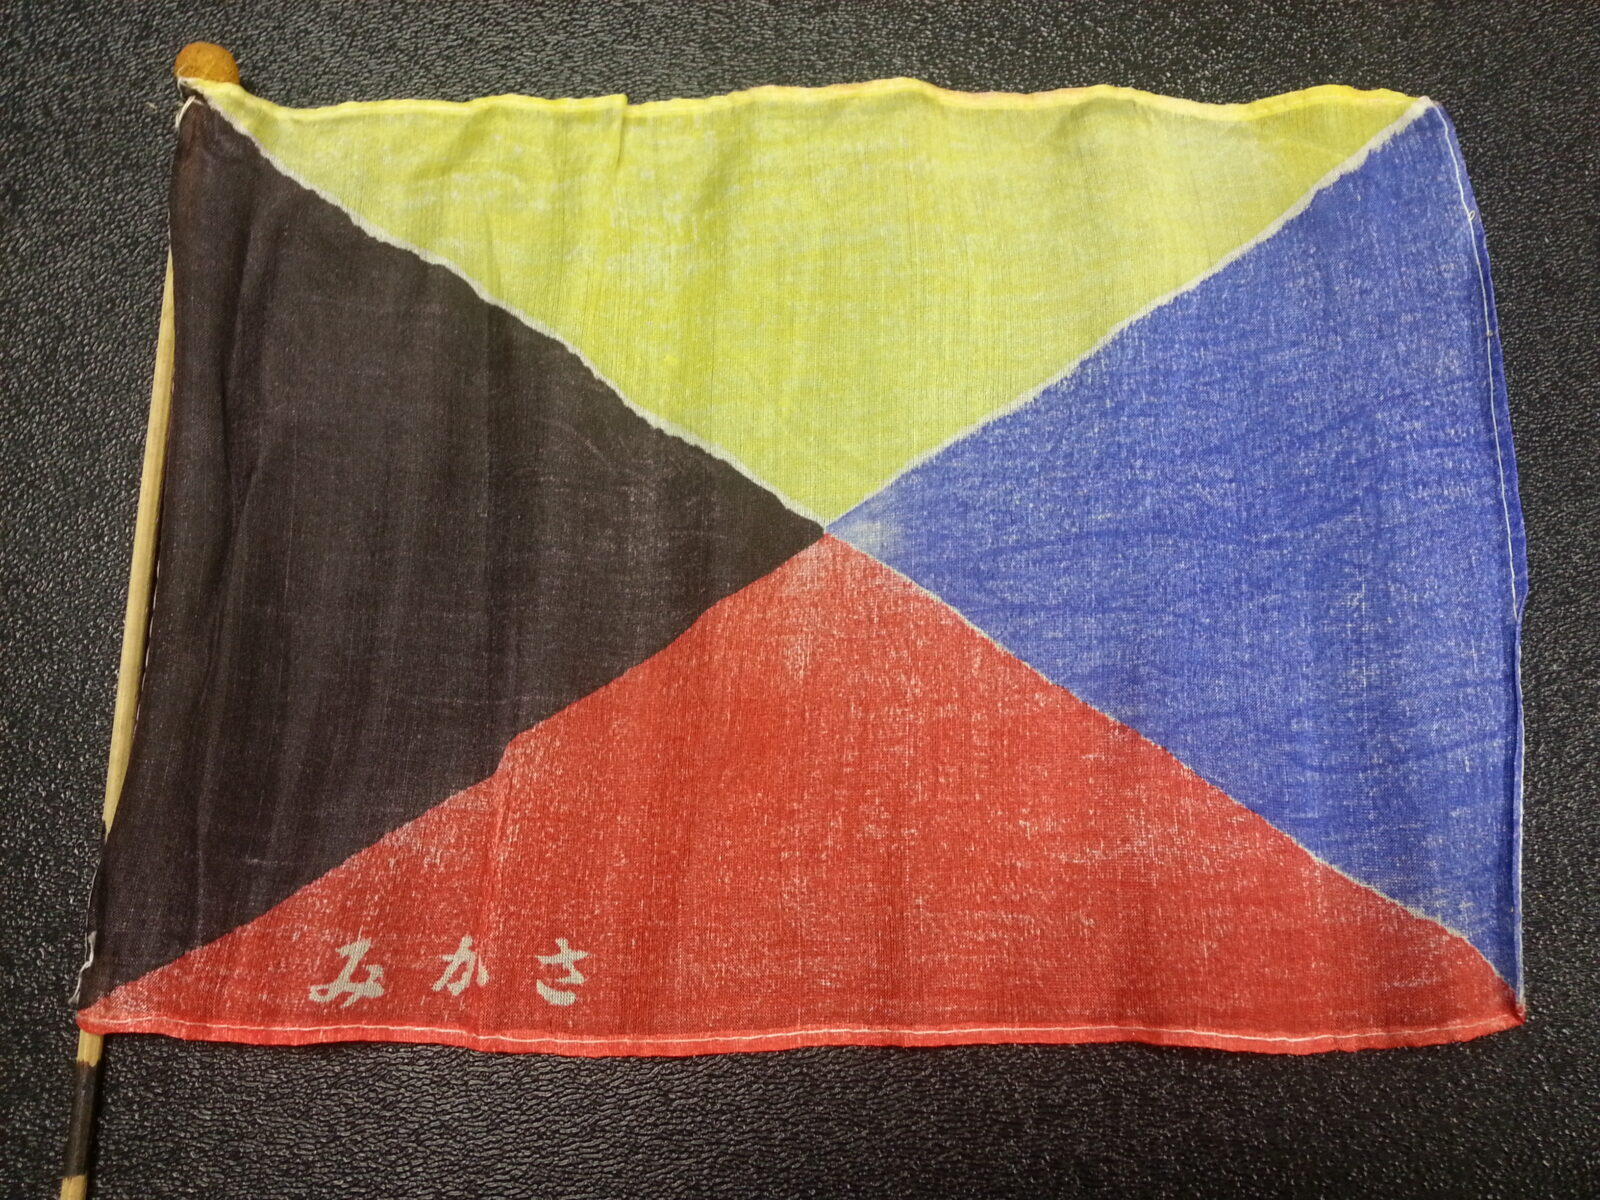 ditty bag world war ii japanese parade victory flags naval